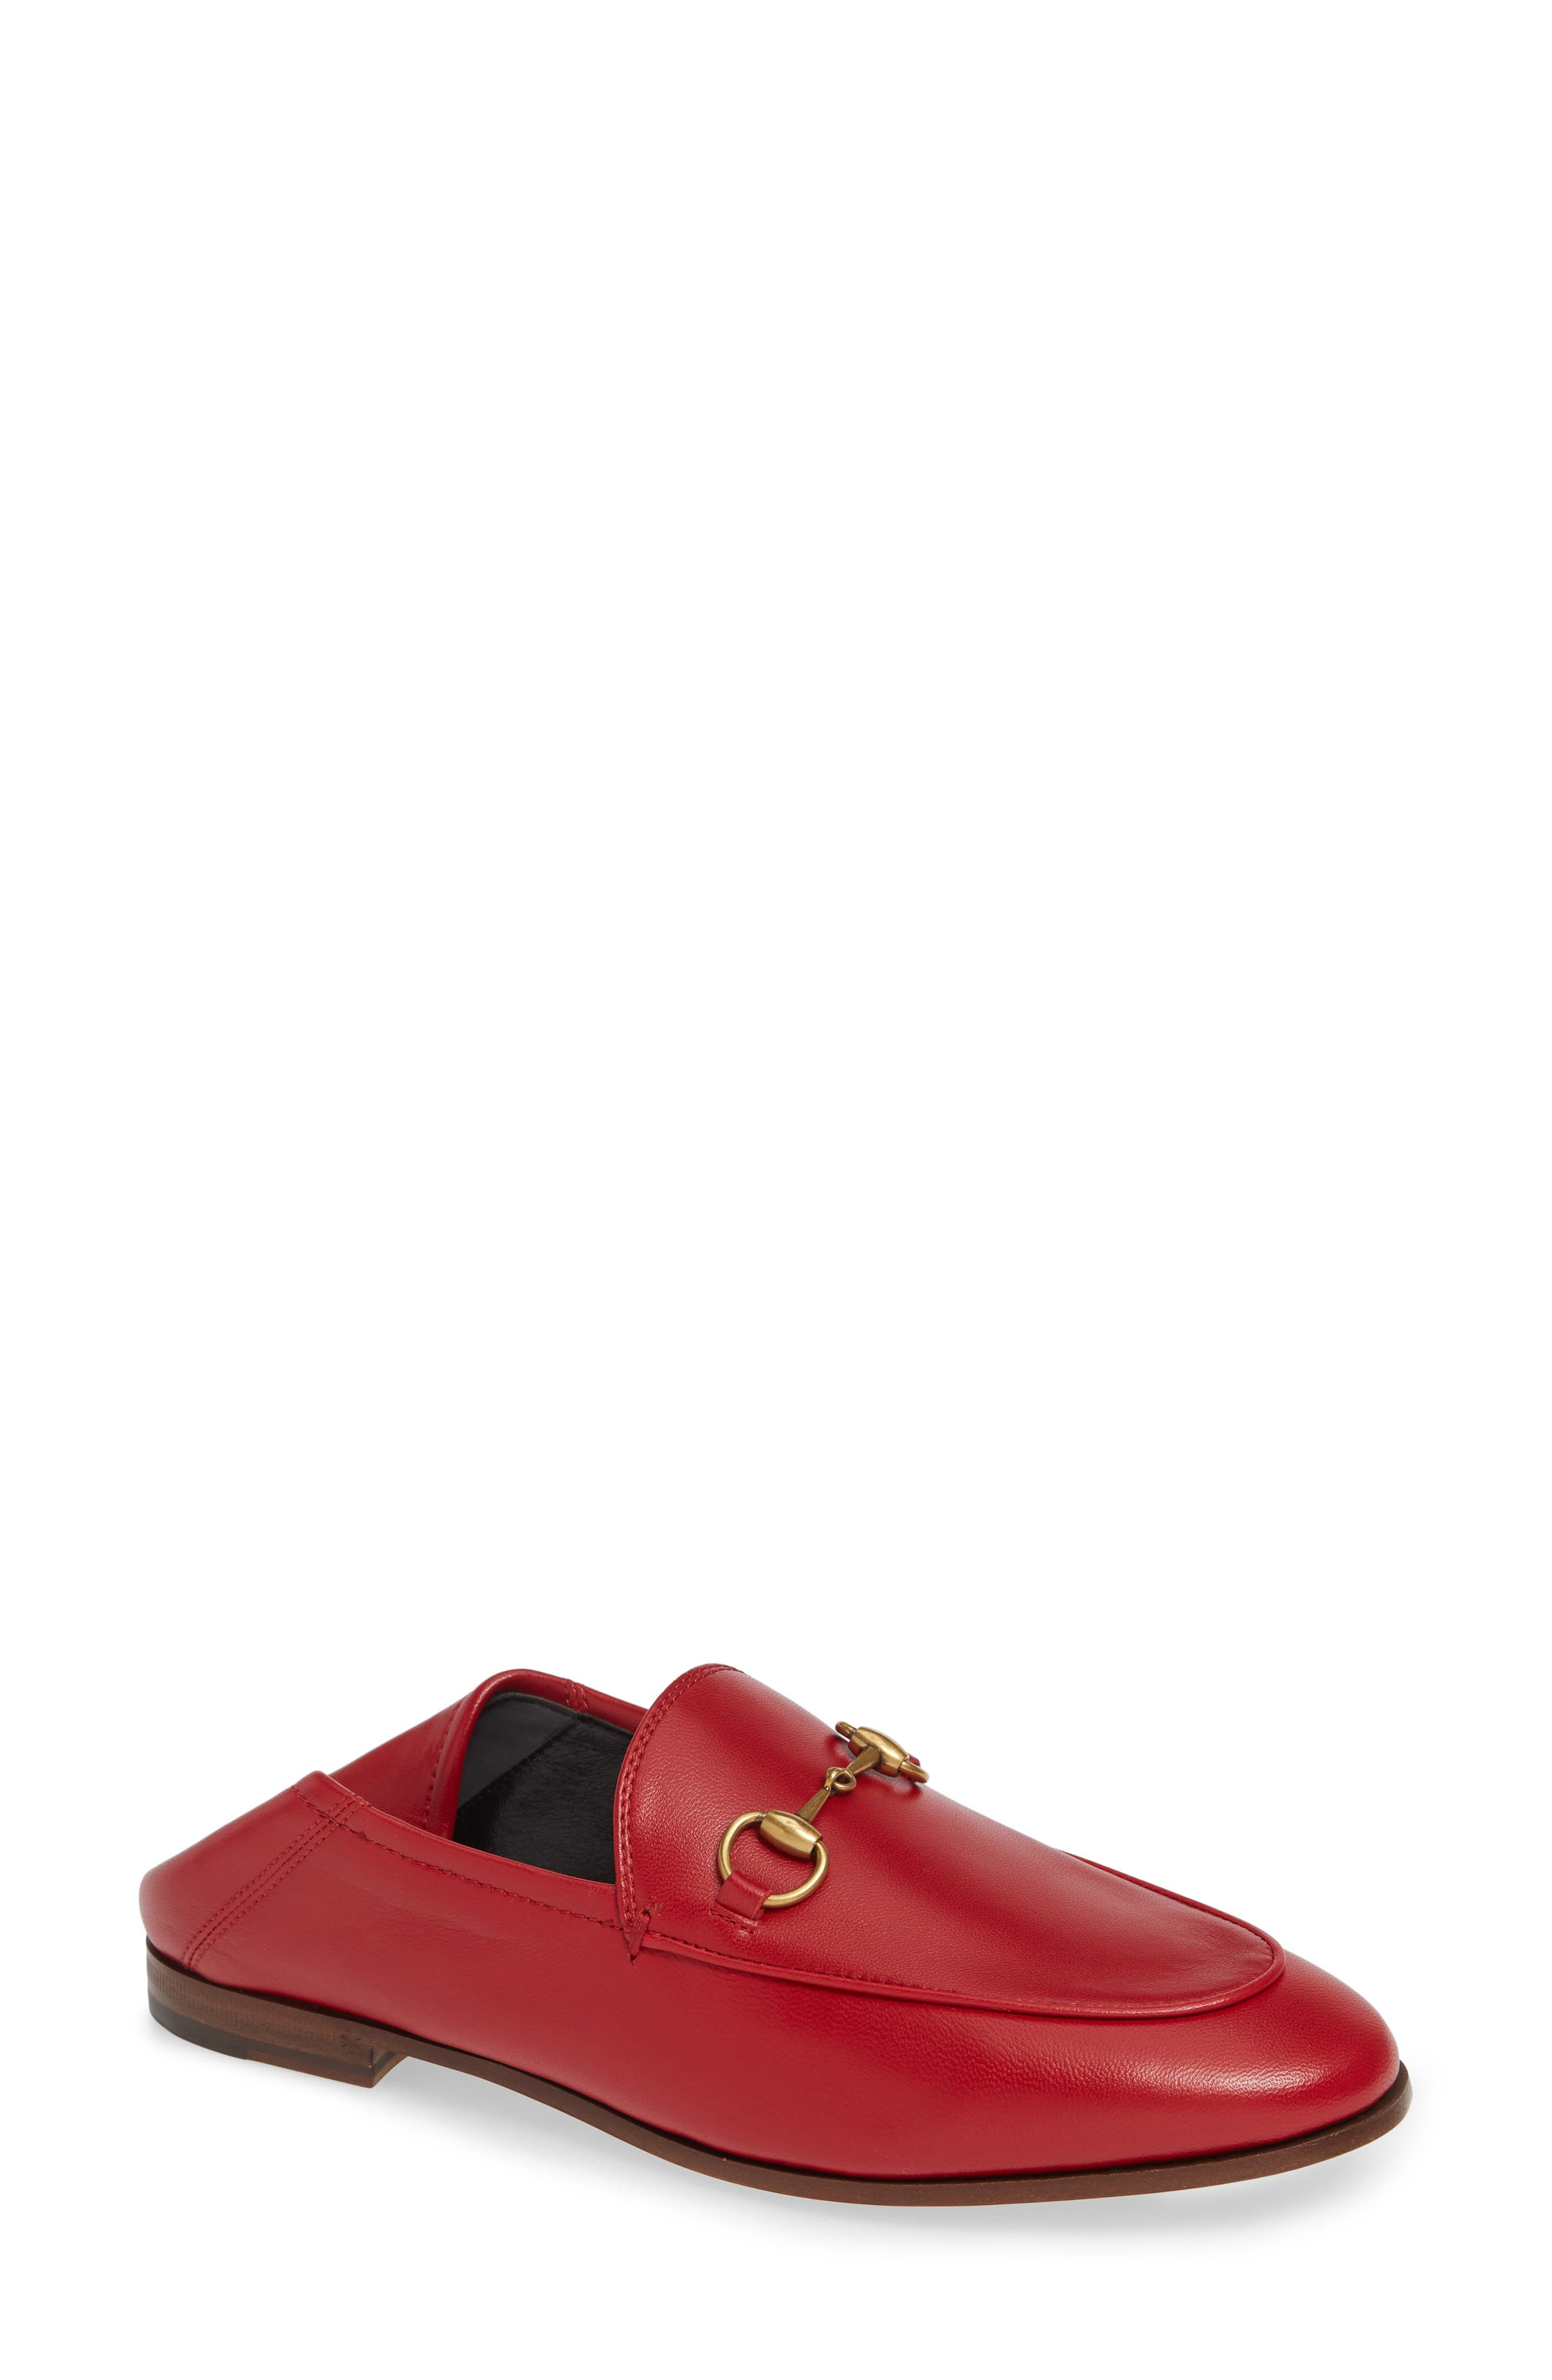 Brixton Convertible Loafer by Gucci